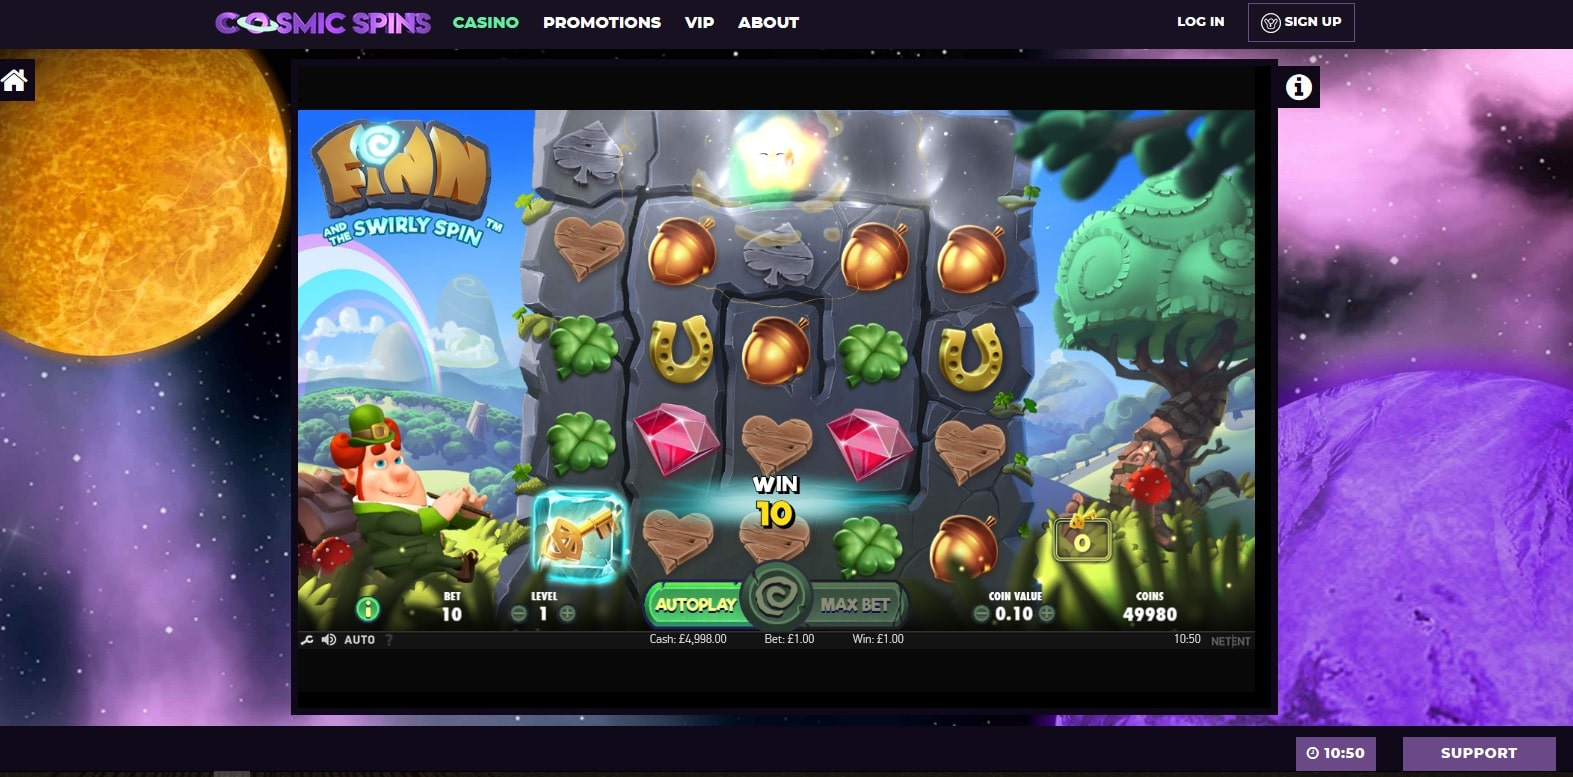 cosmic spins casino gameplay finn and the swirly spin slot